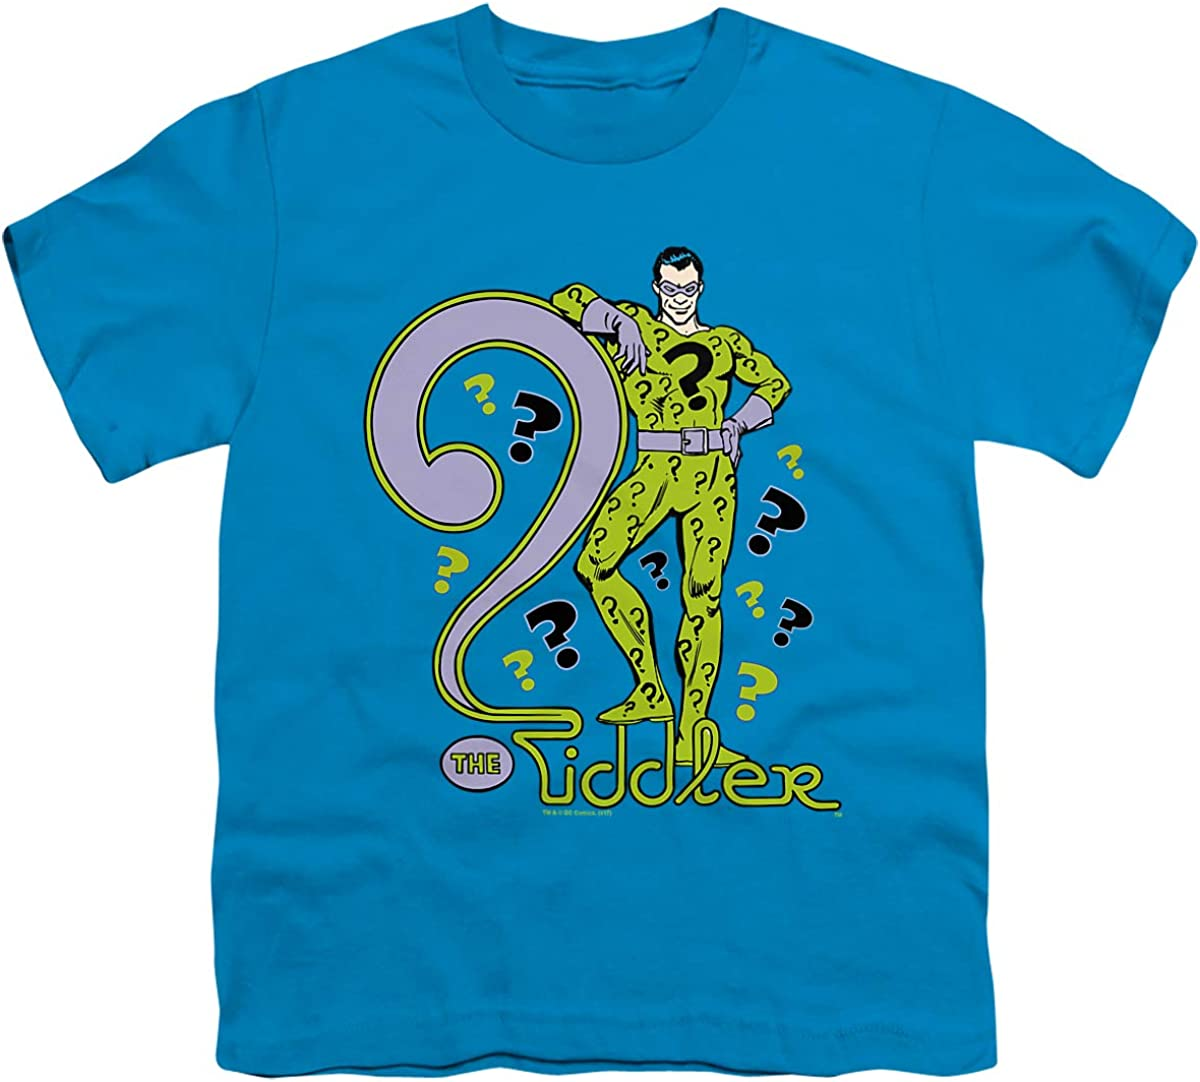 DC The Riddler Unisex Youth T Shirt, Turquoise, X-Large